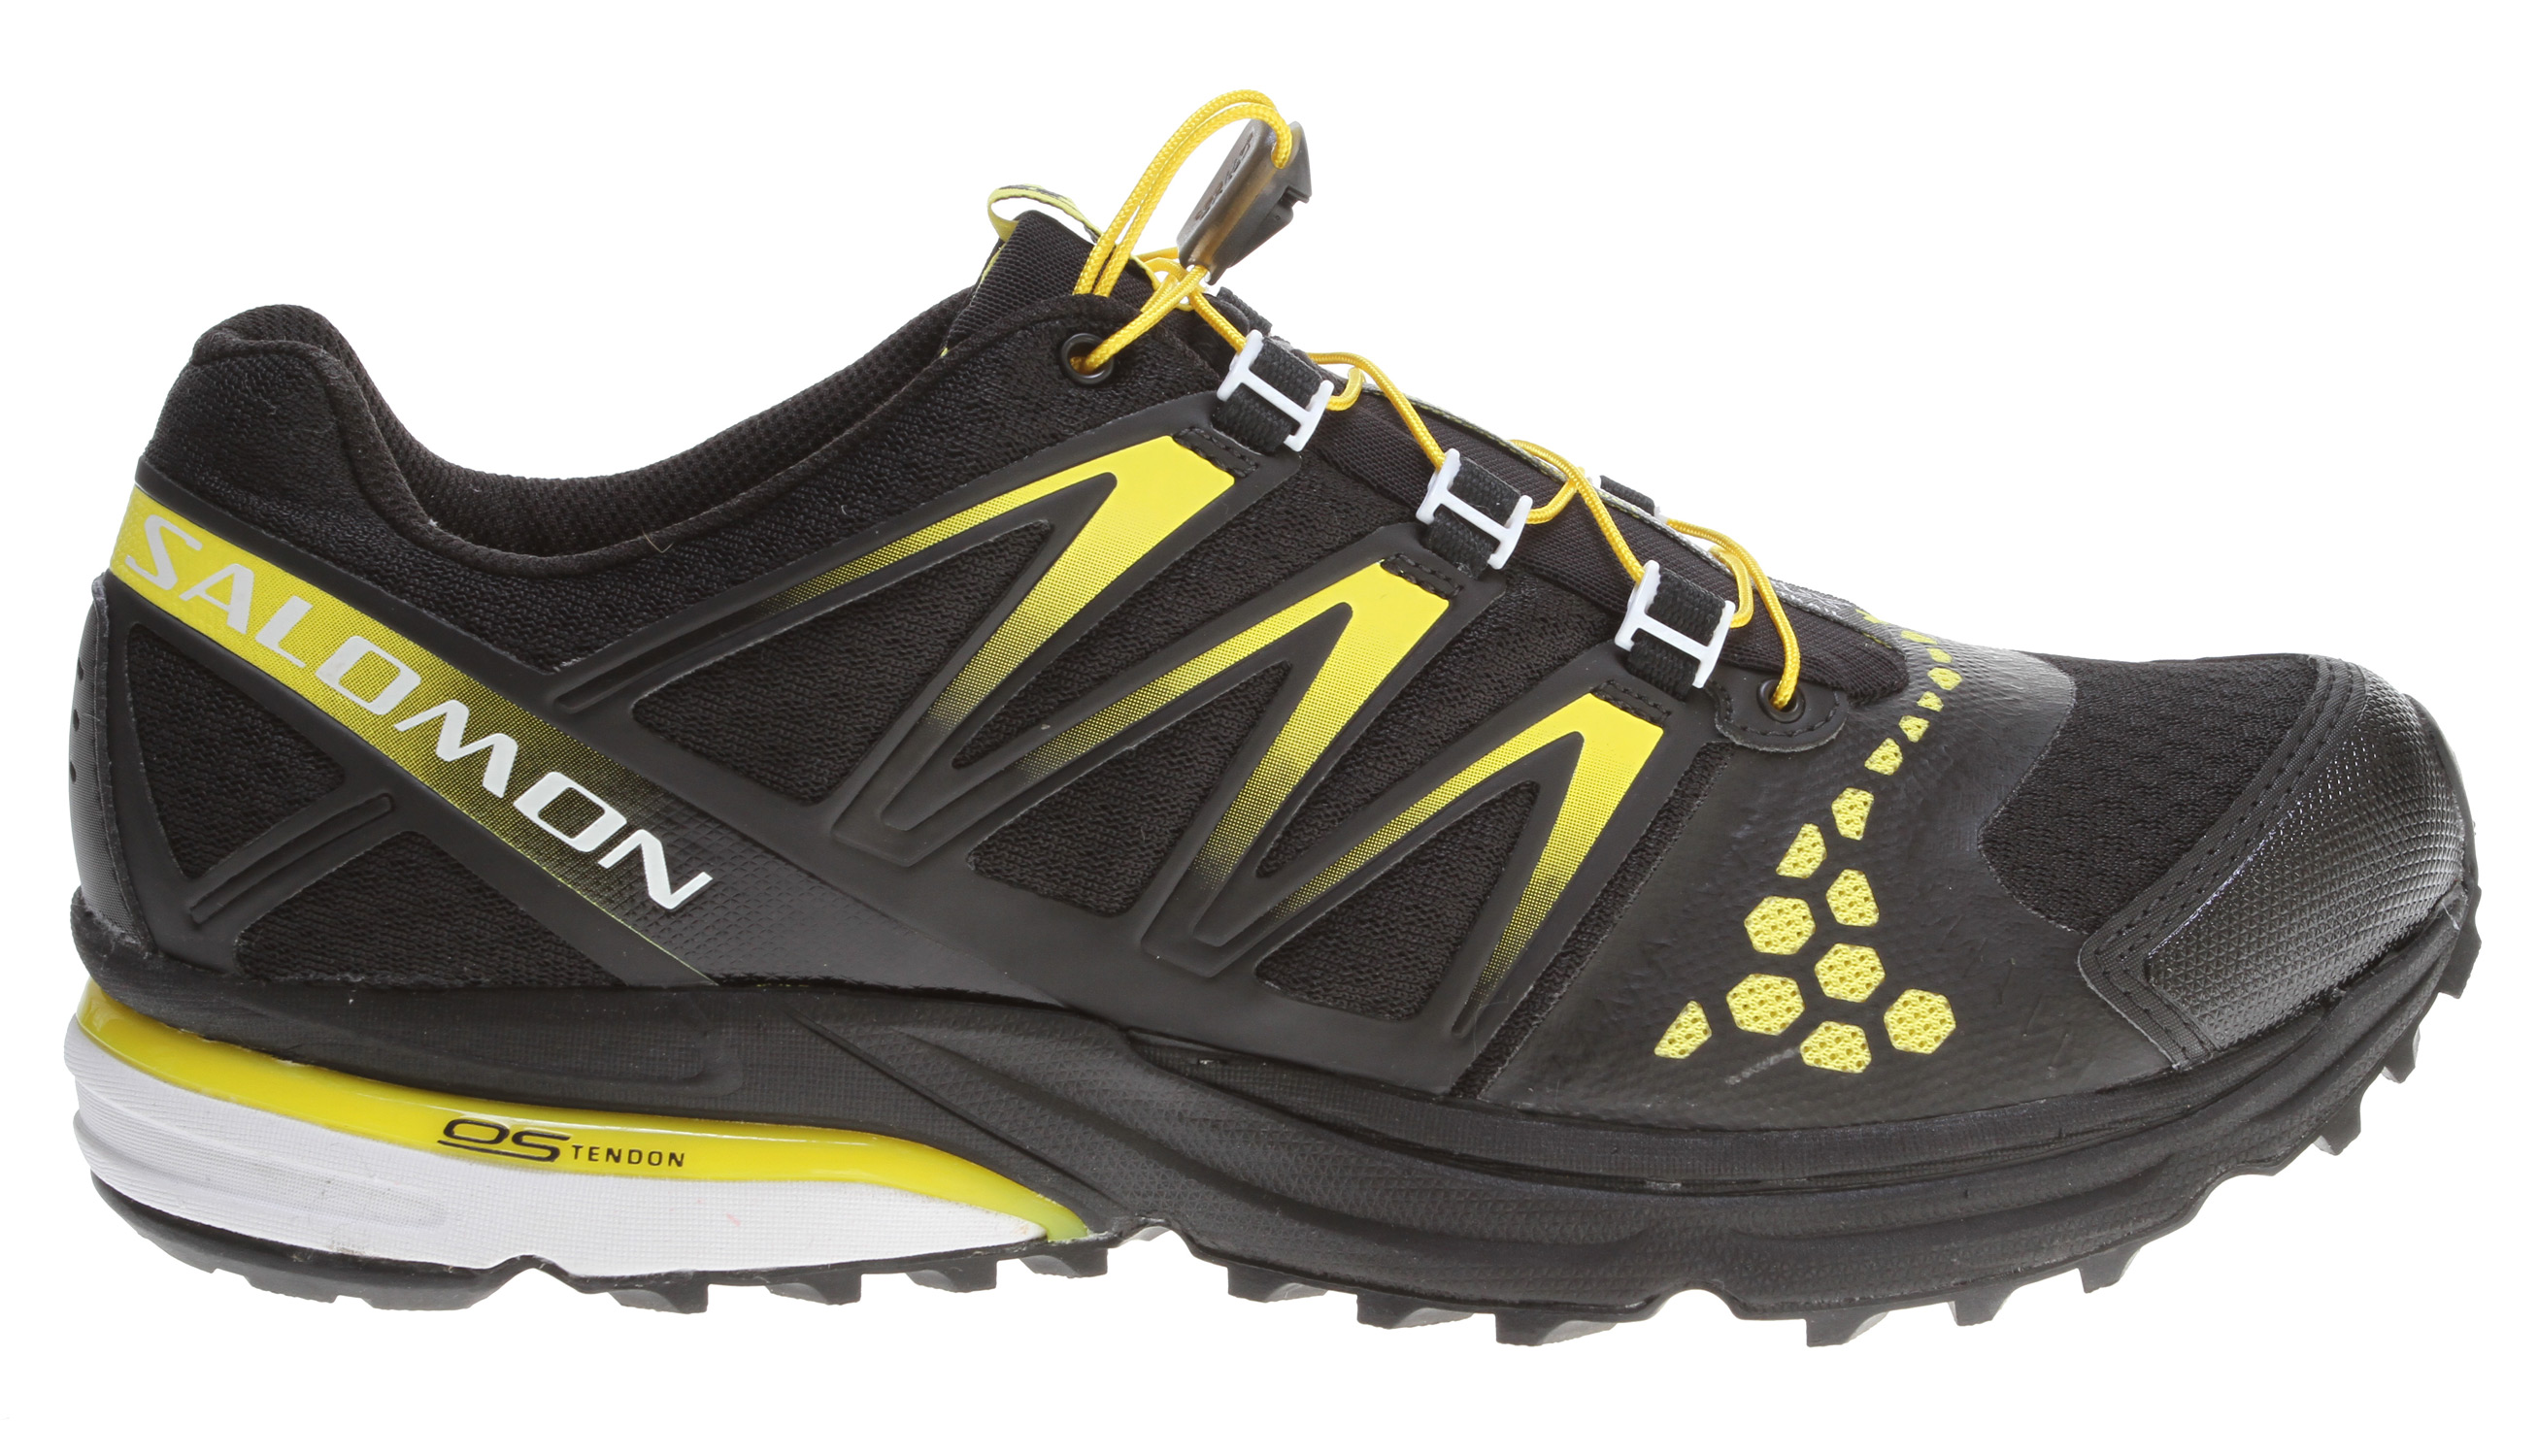 Camp and Hike High mileage training shoe for neutral runners who want one shoe from door to trail.Key Features of the Salomon XR Crossmax Neutral Hiking Shoes:br>WEIGHT 320g / 11.3oz (SIZE US 9) Upper: Friction free lace eyelet Sensifit Lace pocket Guss eted tongue Sensiflex Quicklace Stretch air mesh Lining: lining material: Textile Midsole: TRIPLE DENSITY Molded EVA Outsole: Contagrip LT Contagrip HA OS Tendon Sockliner: OrthoLite - $94.95